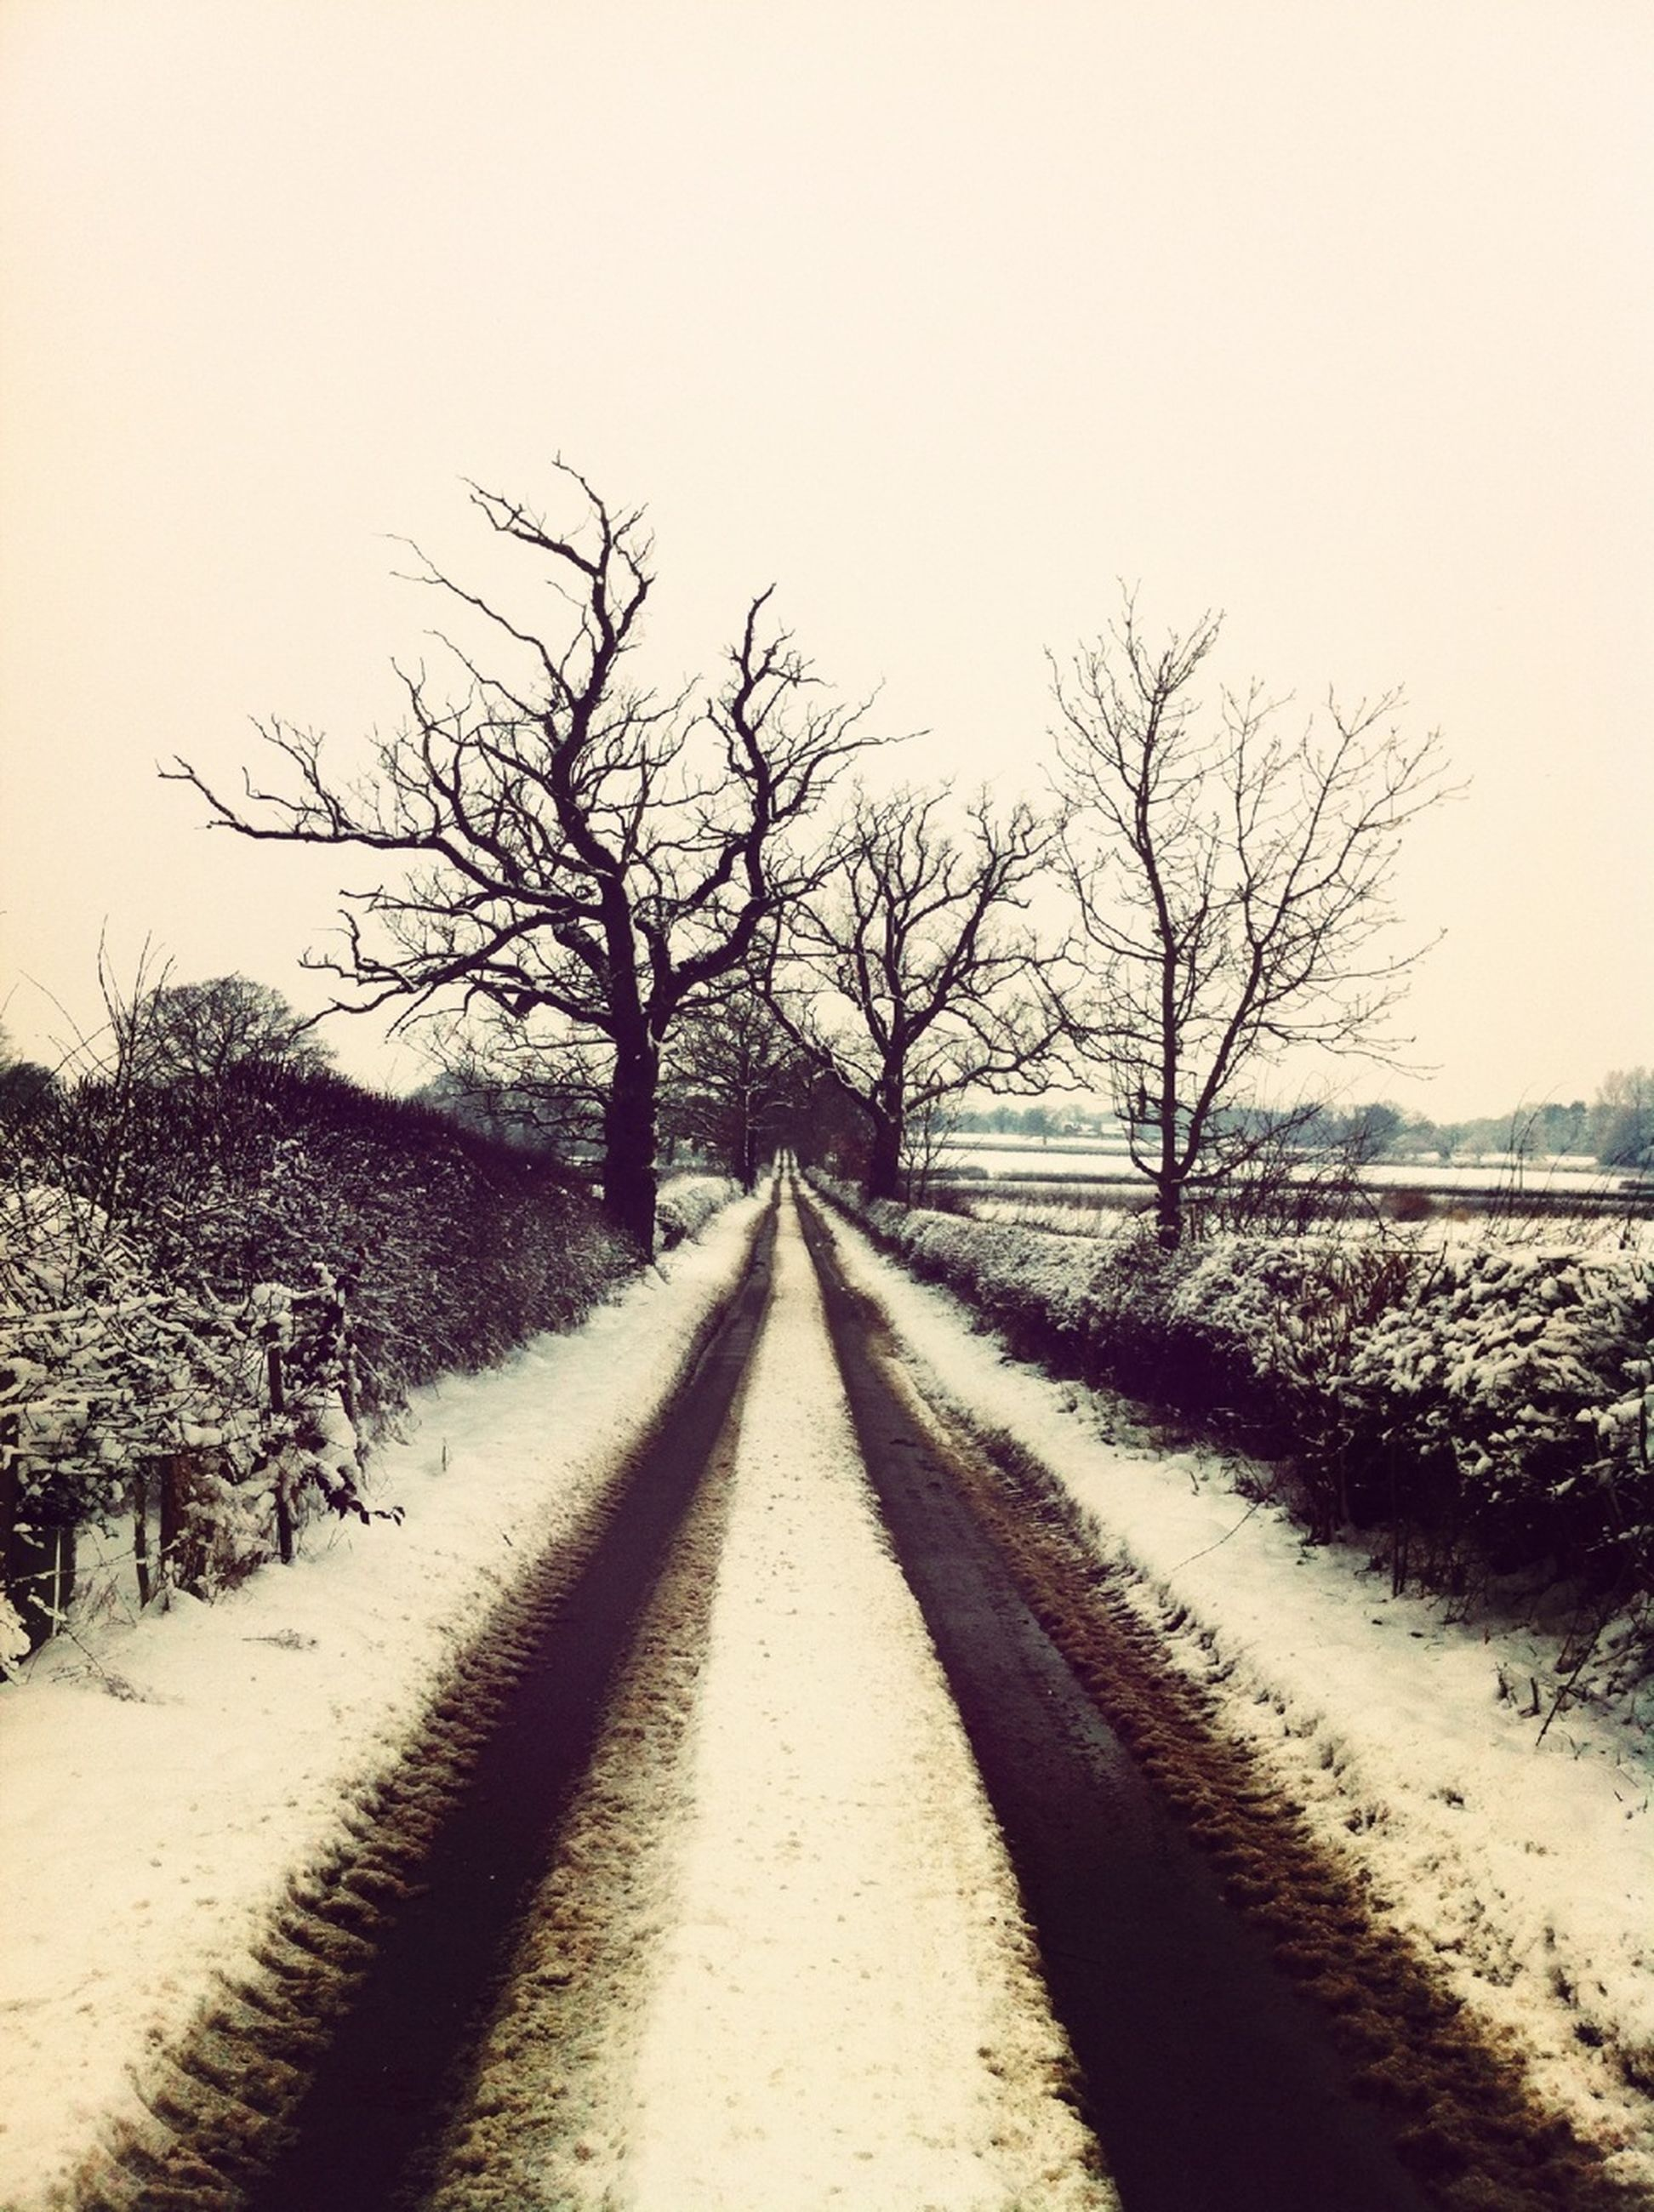 snow, winter, cold temperature, the way forward, bare tree, diminishing perspective, season, vanishing point, weather, road, tree, clear sky, tranquility, covering, tranquil scene, transportation, landscape, nature, field, long